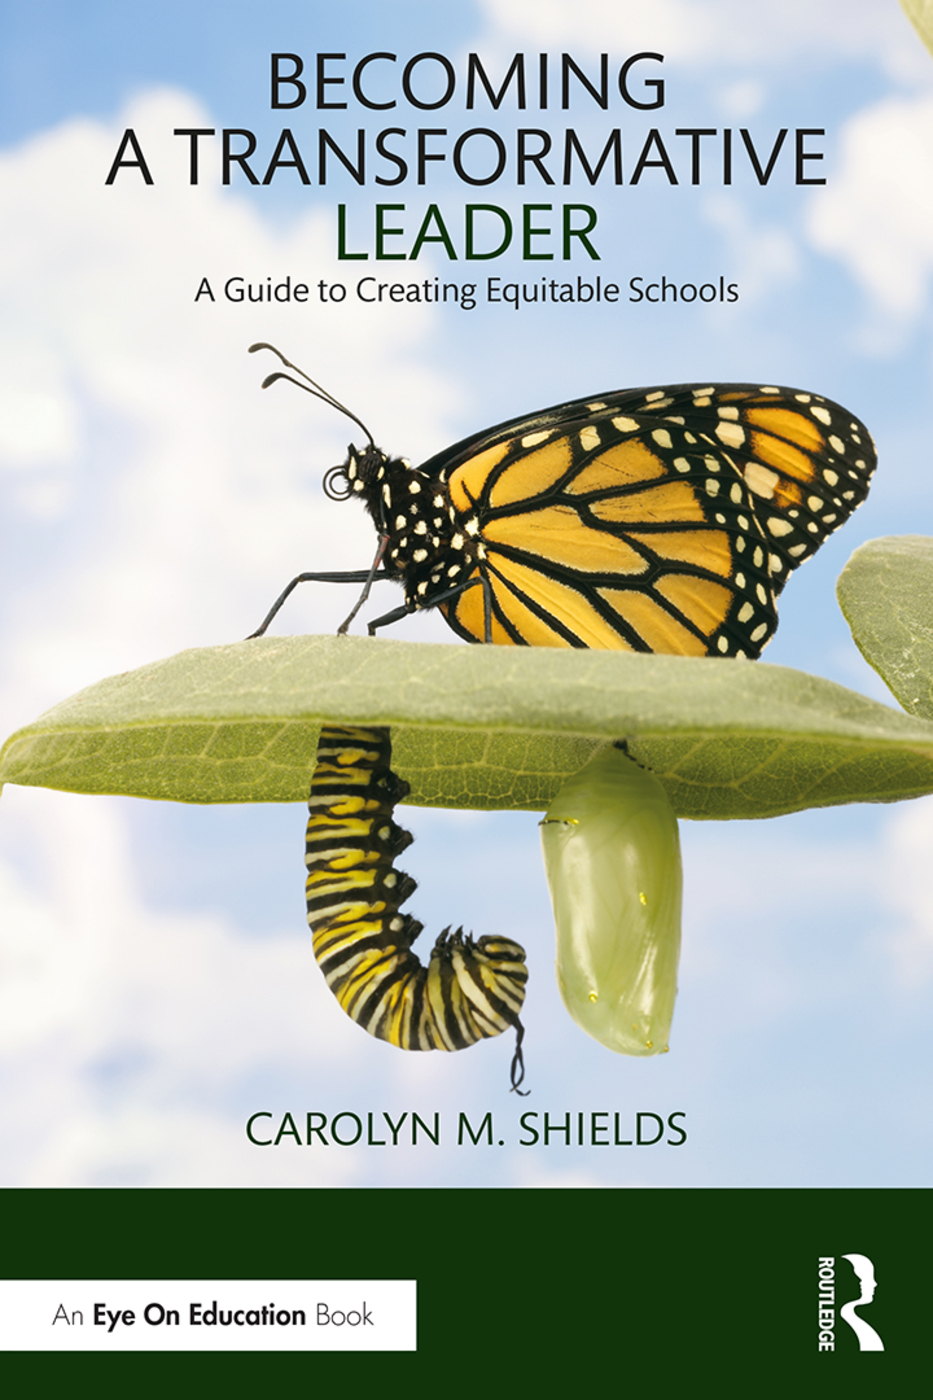 Becoming a Transformative Leader: A Guide to Creating Equitable Schools book cover